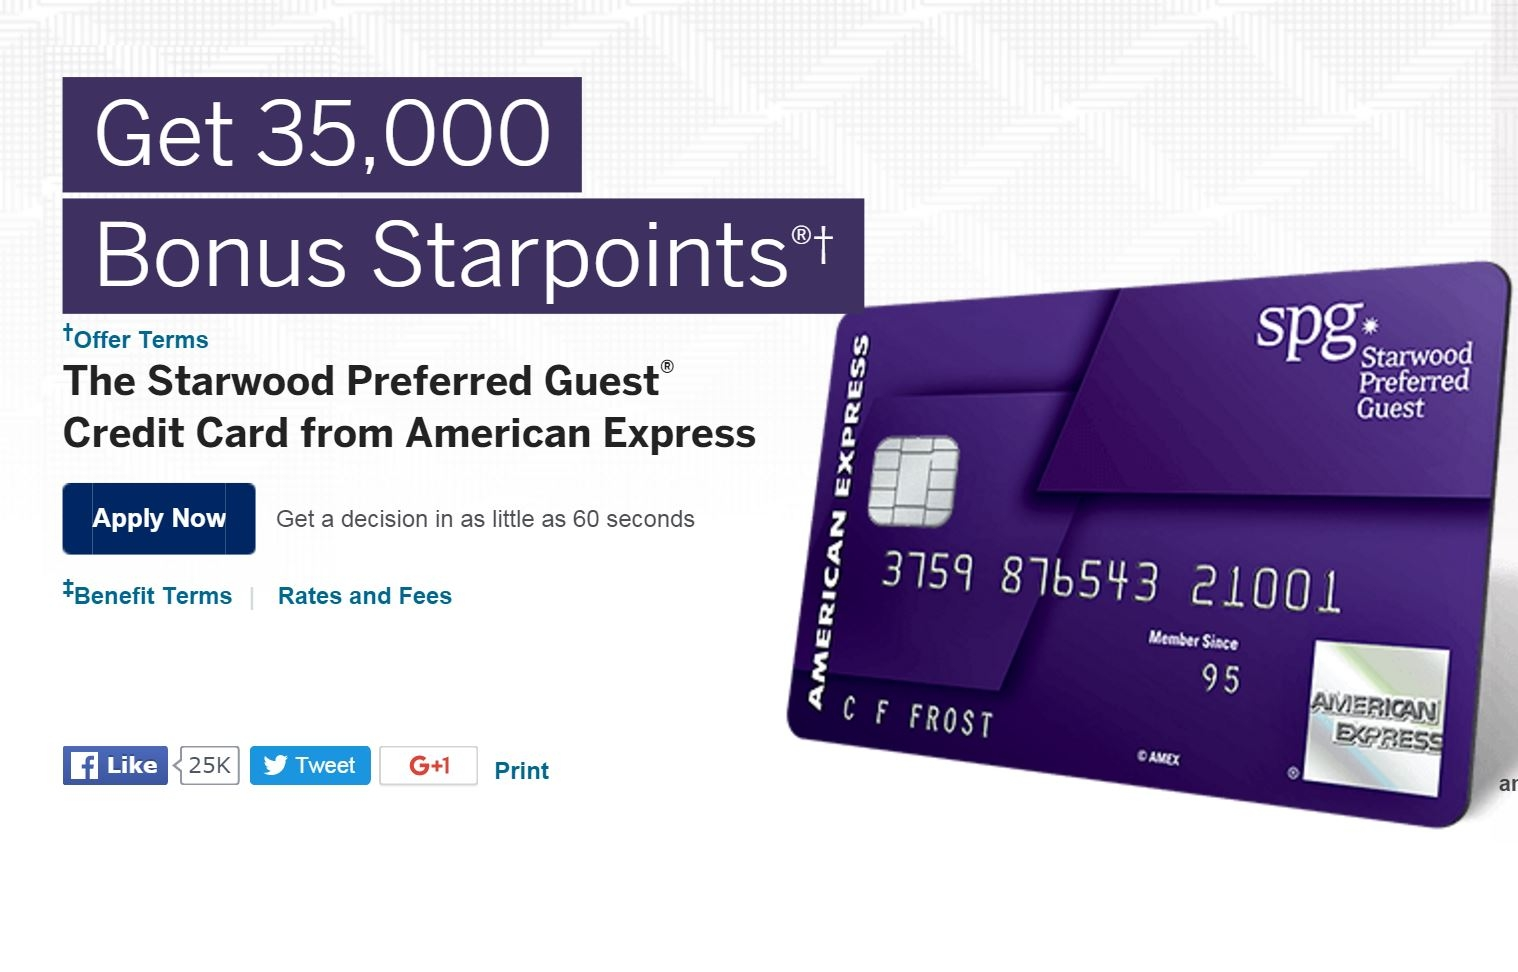 It's Back: Limited Time Increased Sign Up Bonus on SPG AMEX! 35,000 Starpoints!